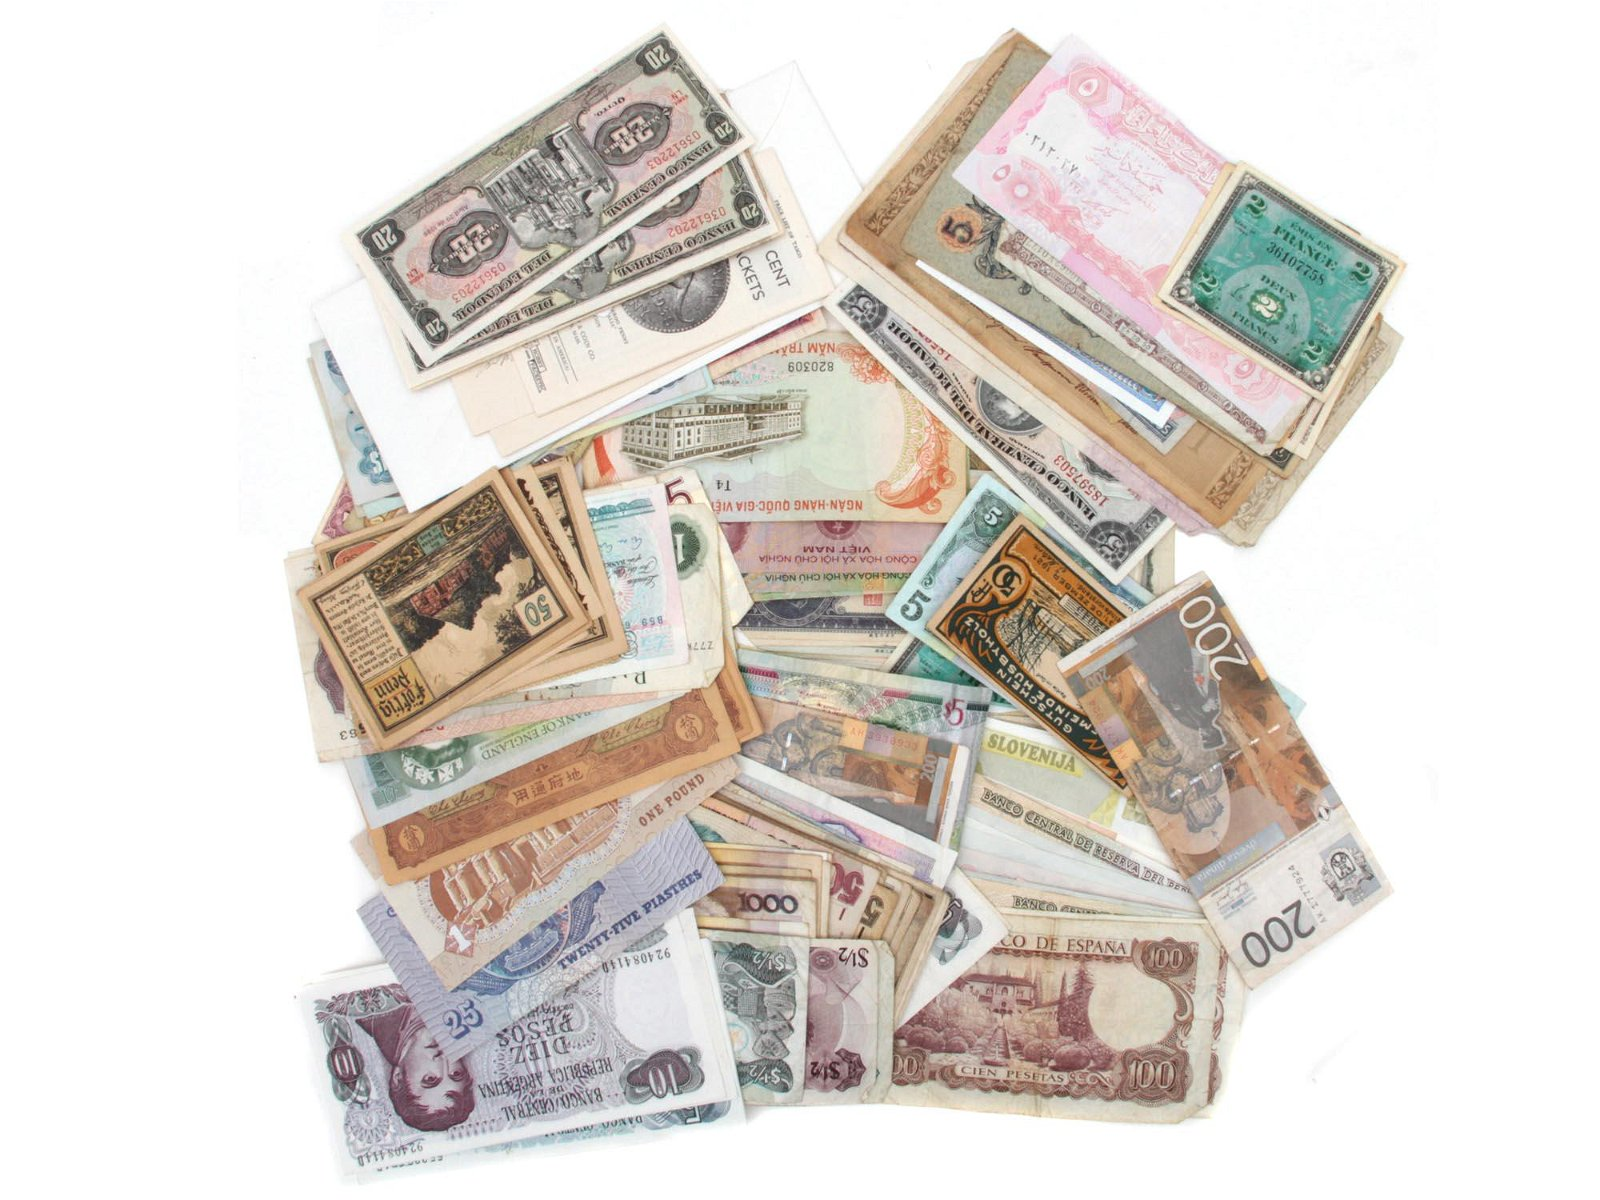 A COLLECTION OF OBSOLETE CURRENCY AND PAPER MONEY